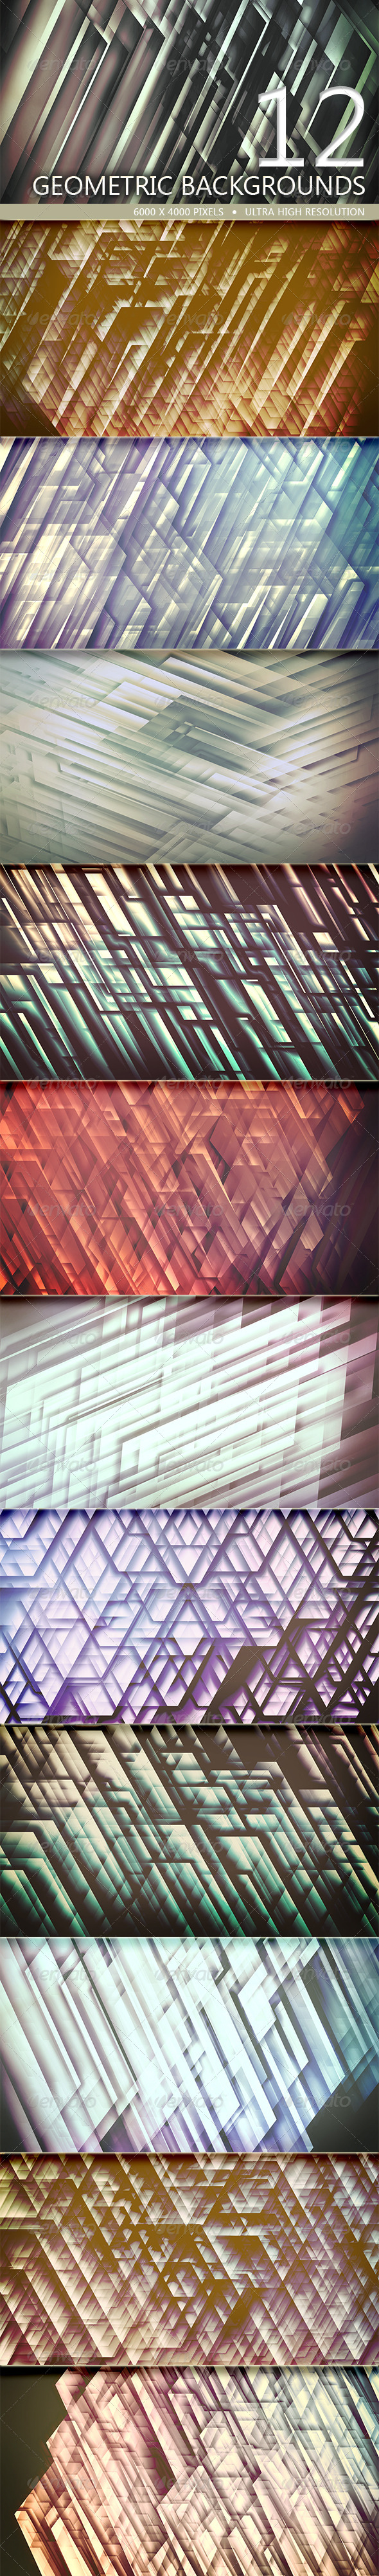 GraphicRiver Geometric Backgrounds Volume 3 5206961